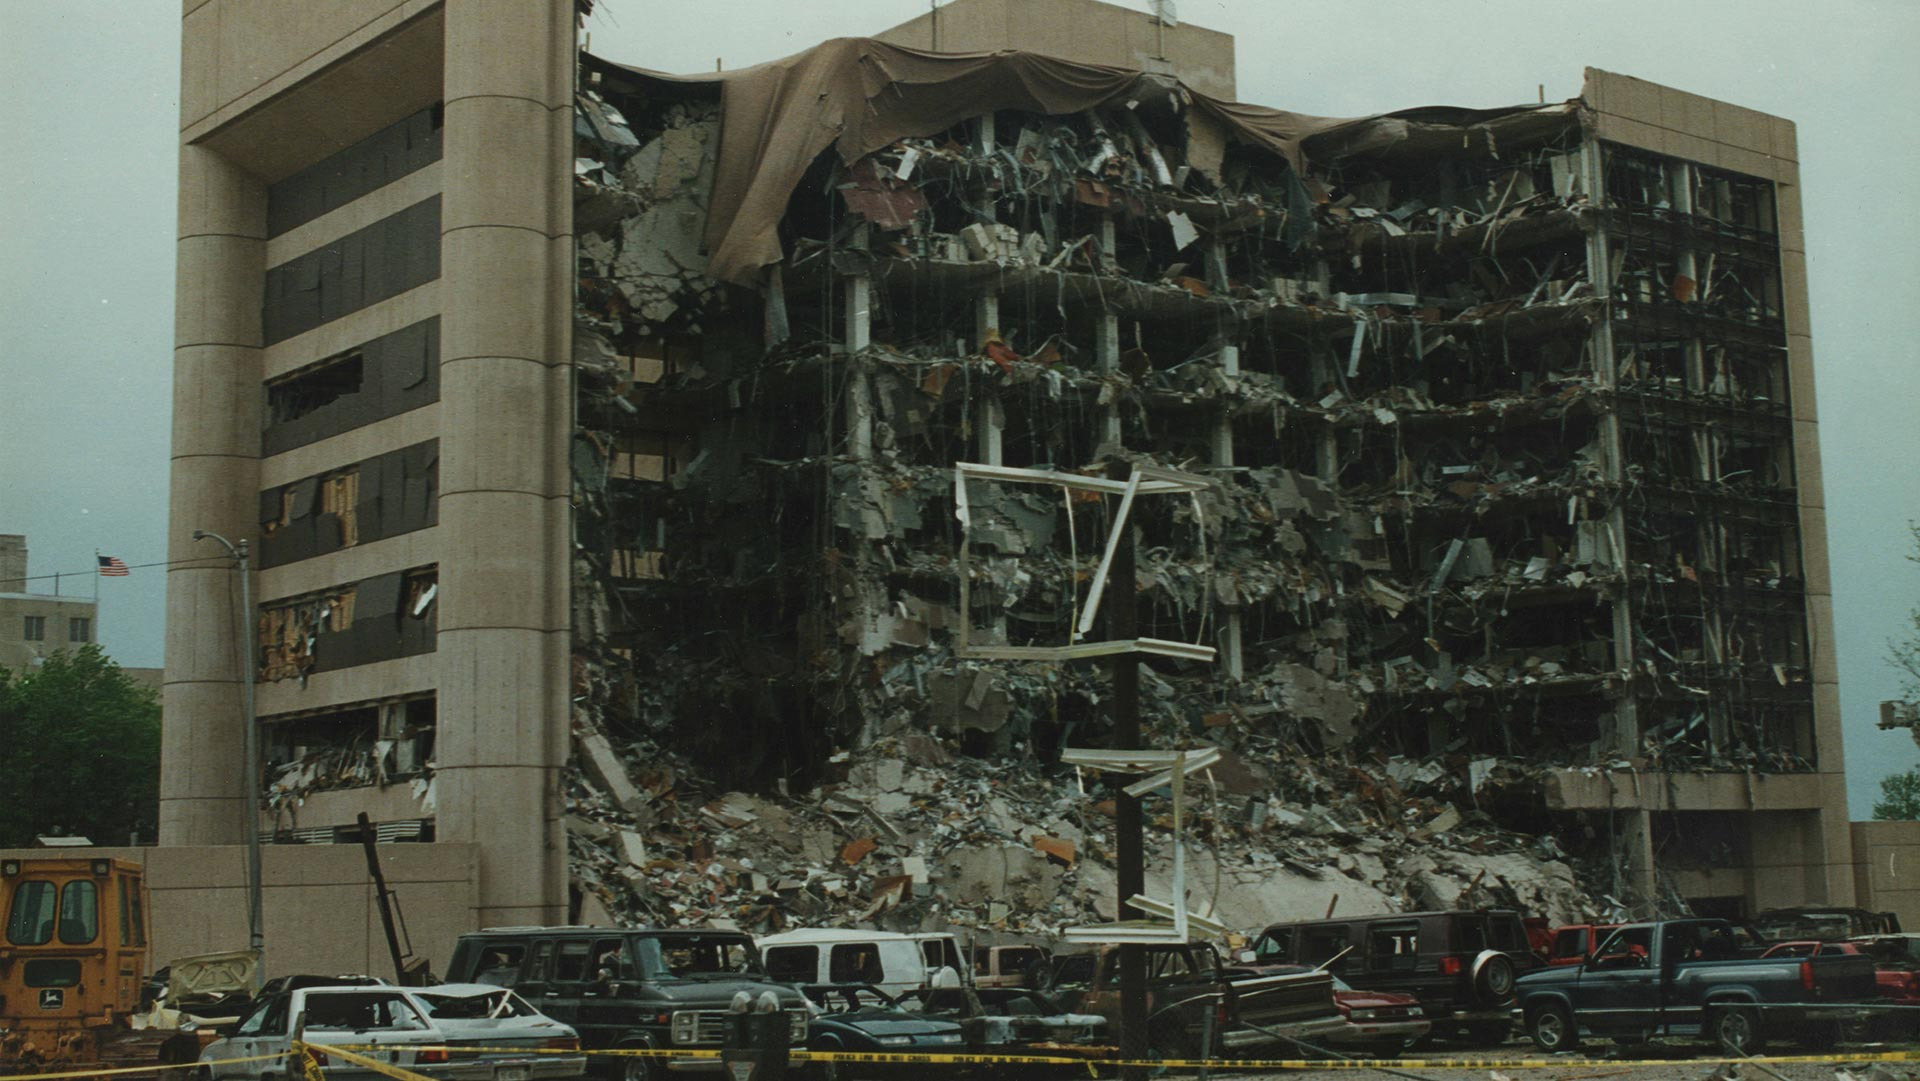 The Alfred P. Murrah Federal Building after the bombing (April 19, 1995).